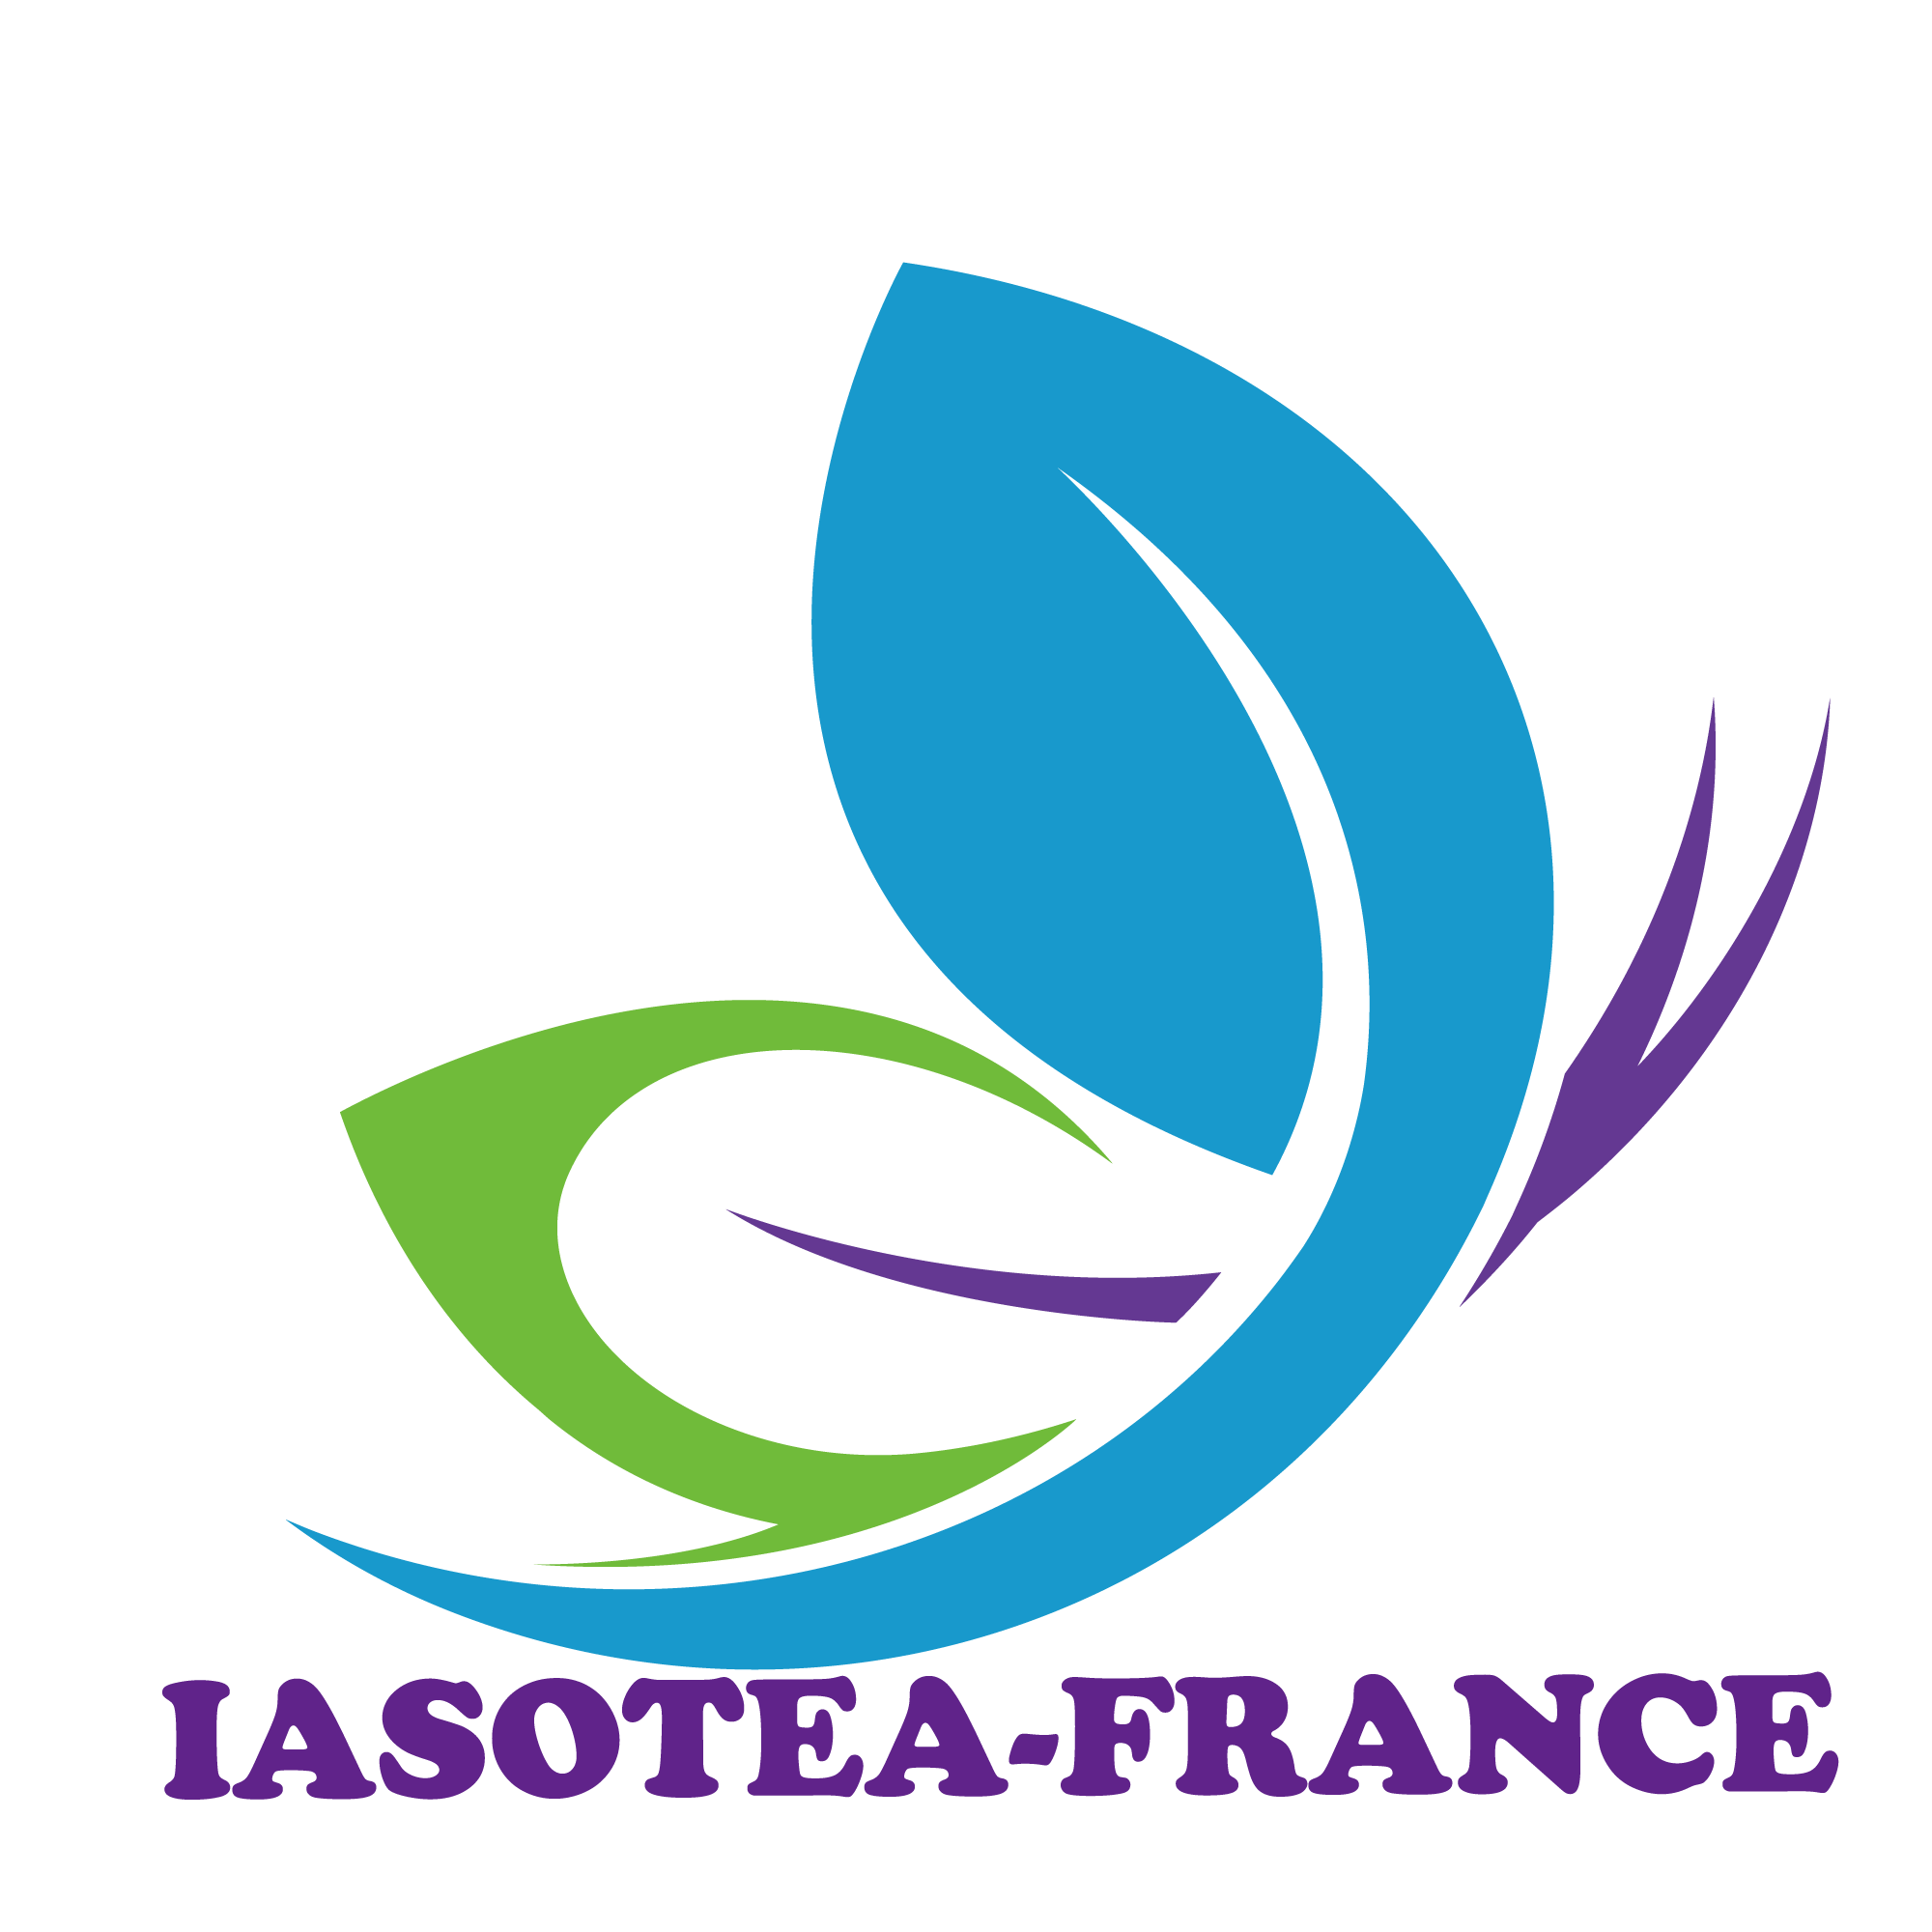 iasotea-france